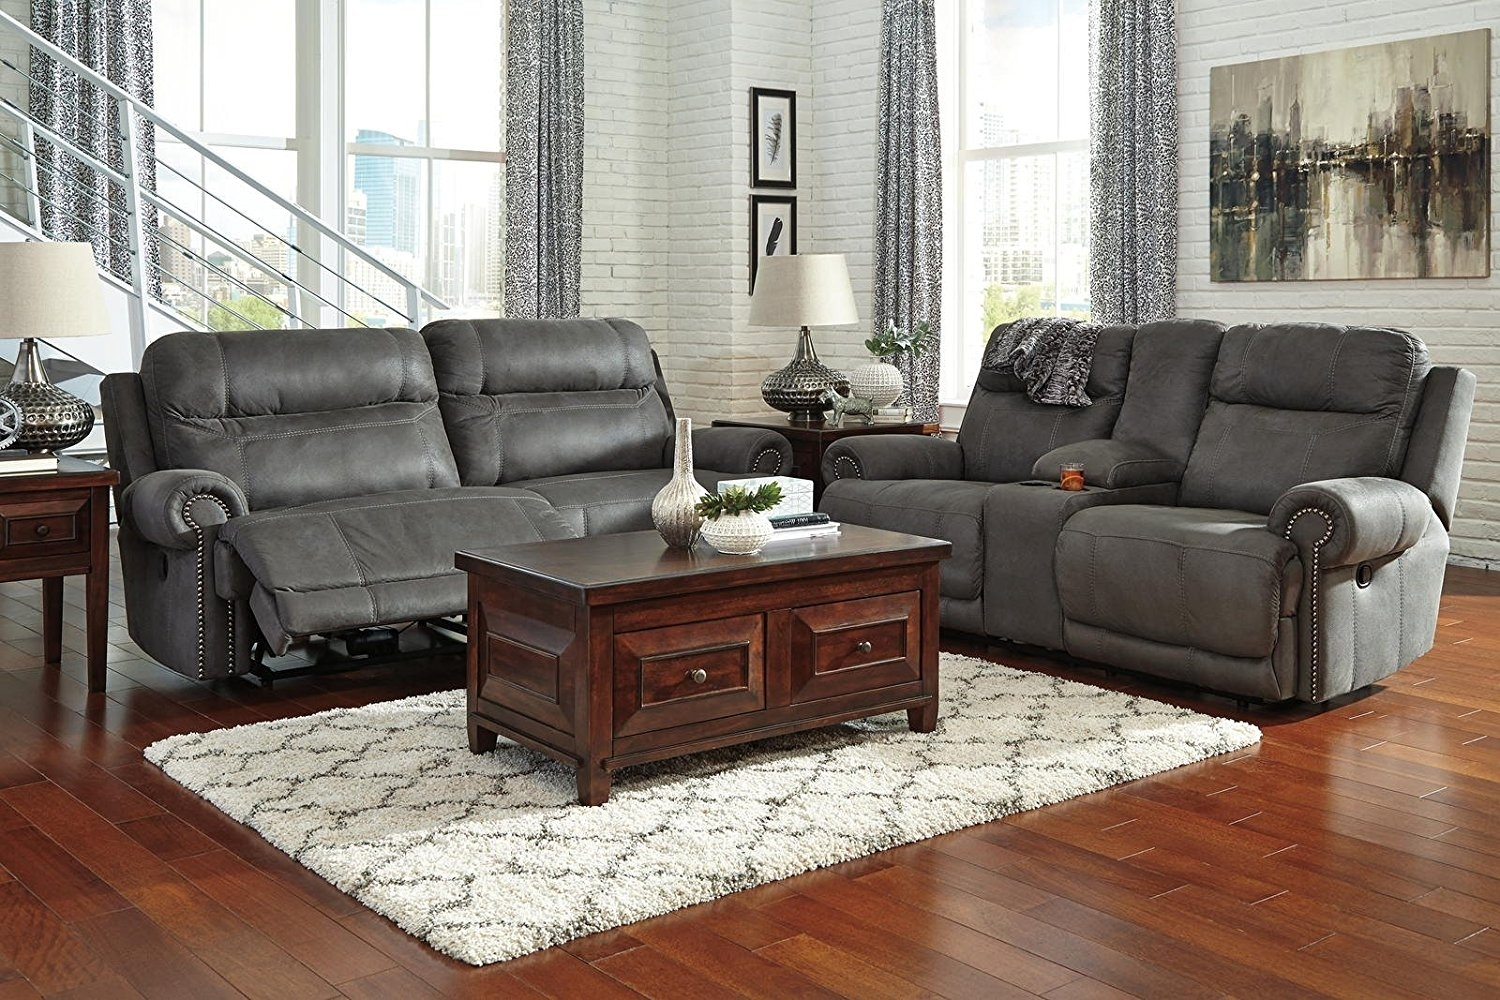 Living Room : Ashley Furniture Sectional Sofas Leather Sectional For Gallery Furniture Sectional Sofas (View 9 of 10)